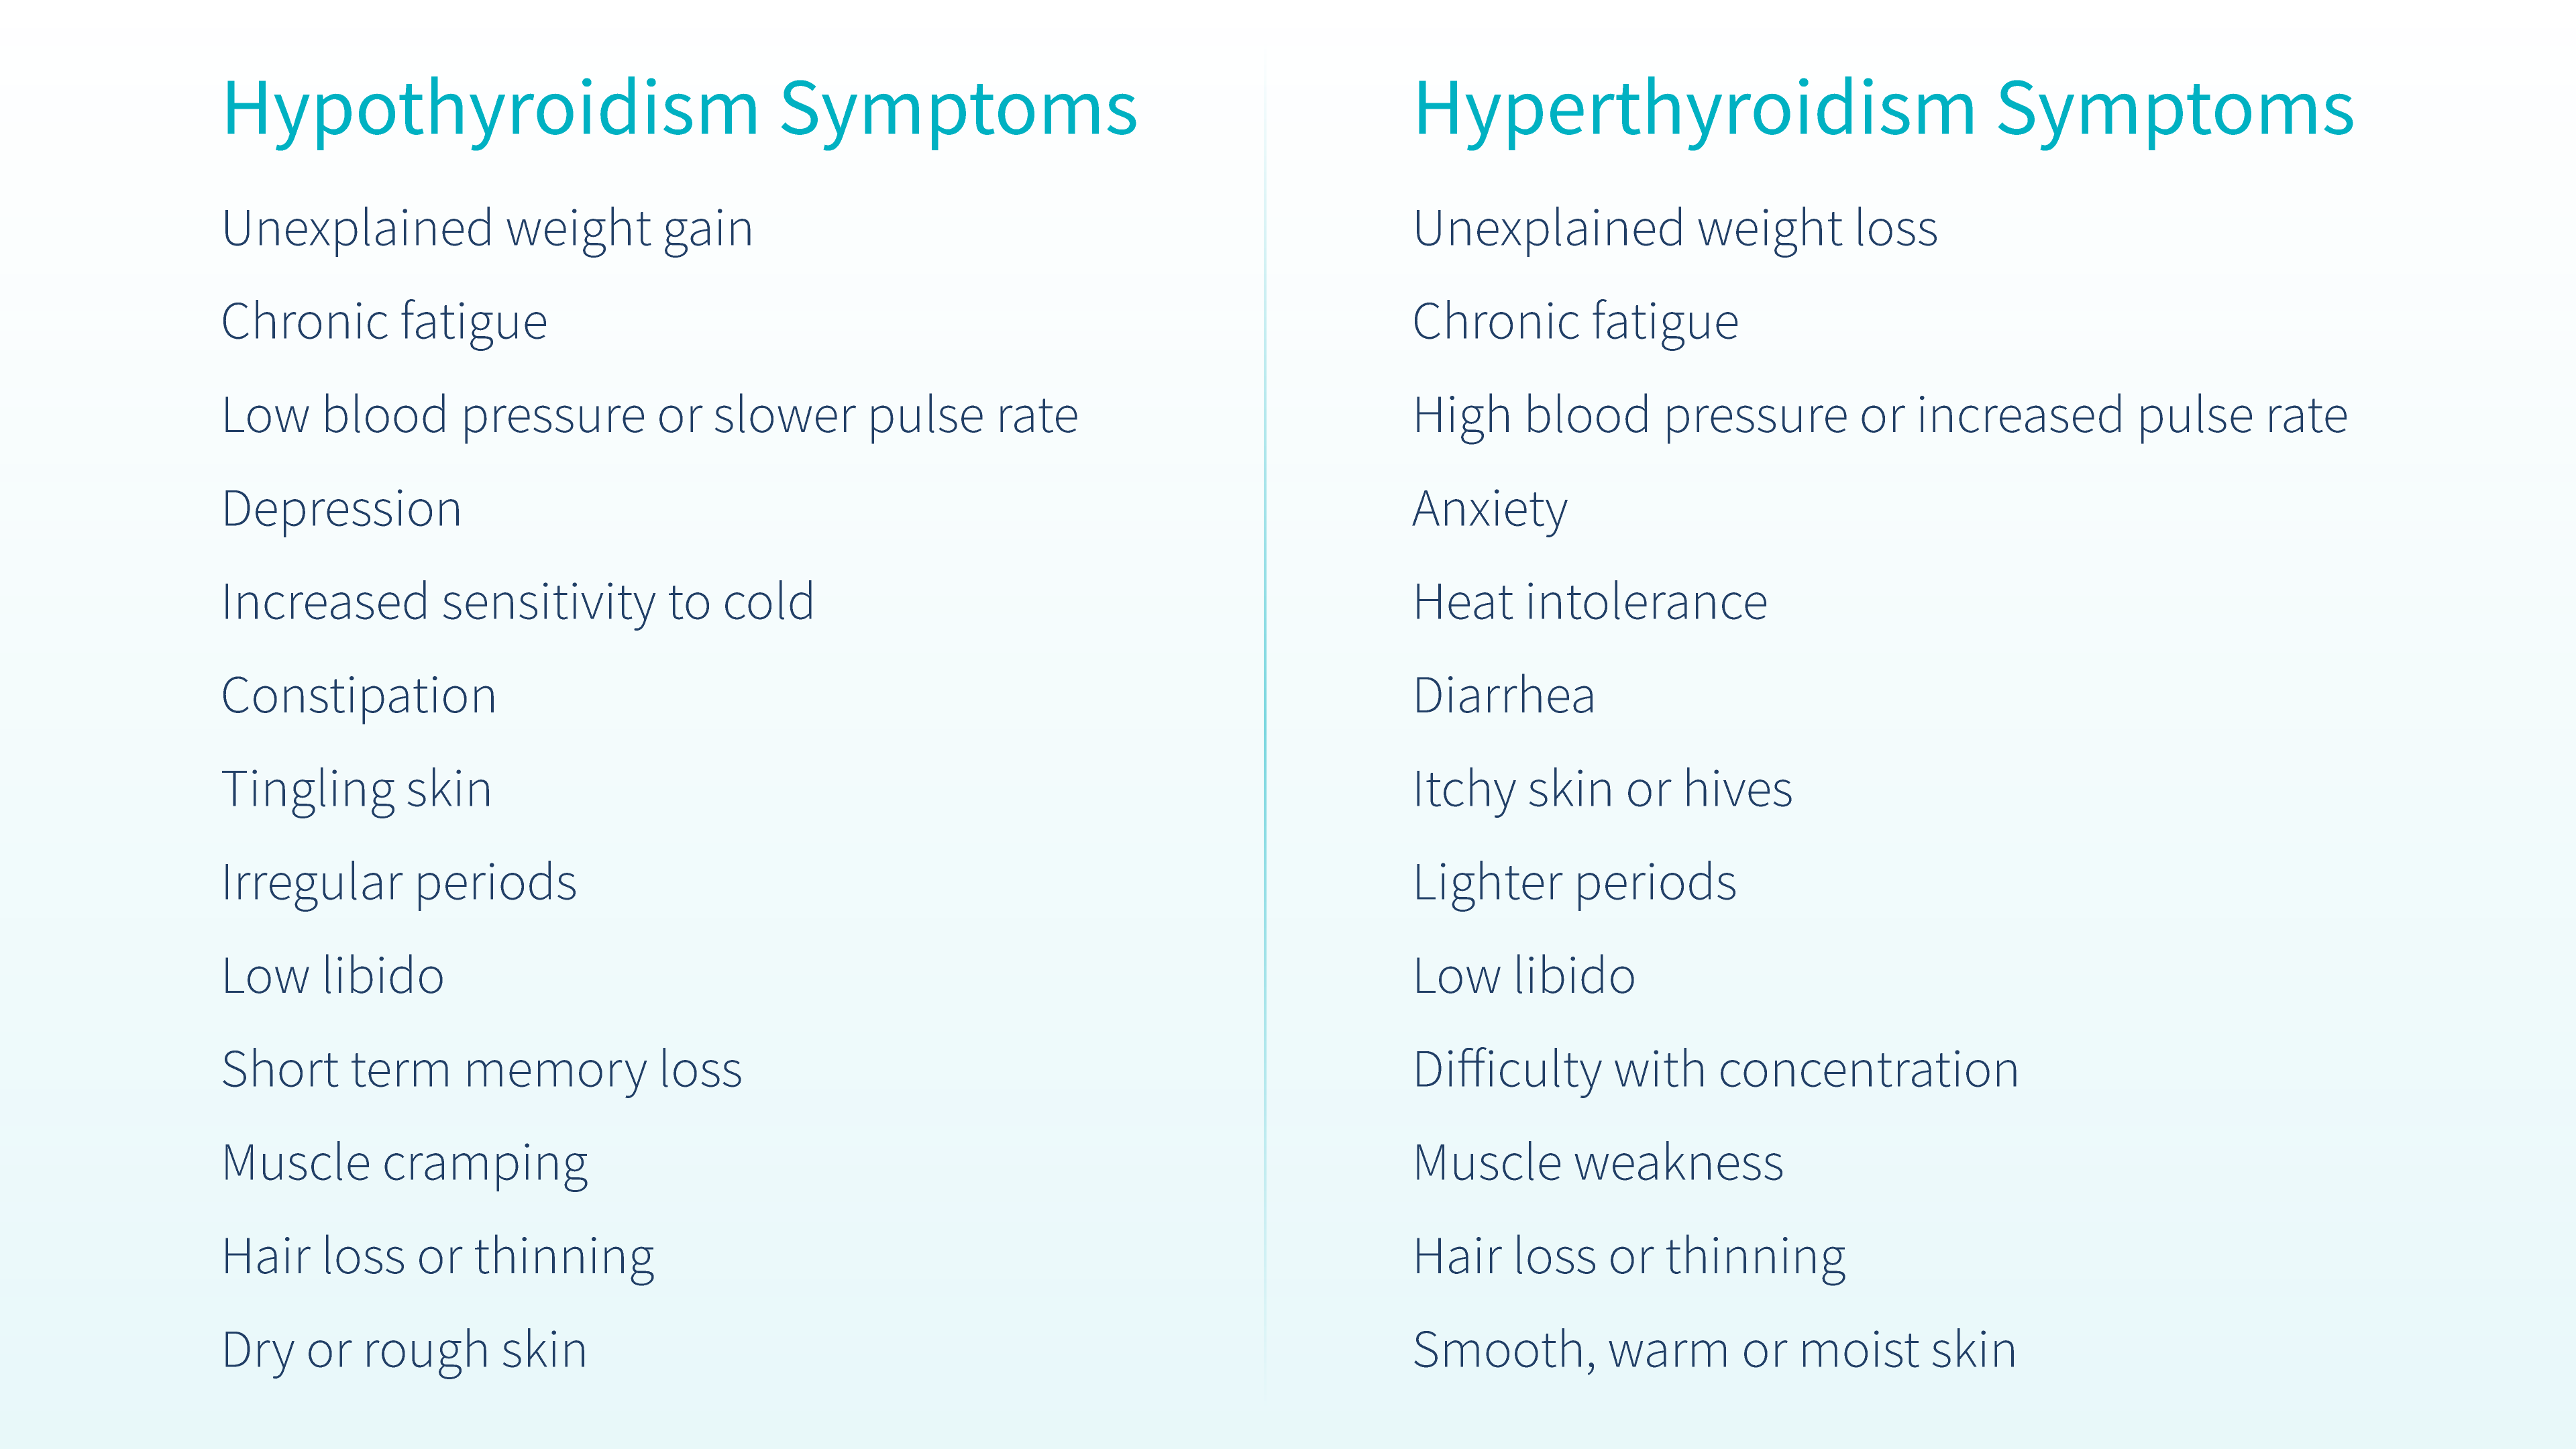 thyroid-weight-gain-symptoms-of-hypothyroidism-and-hyperthyroidism